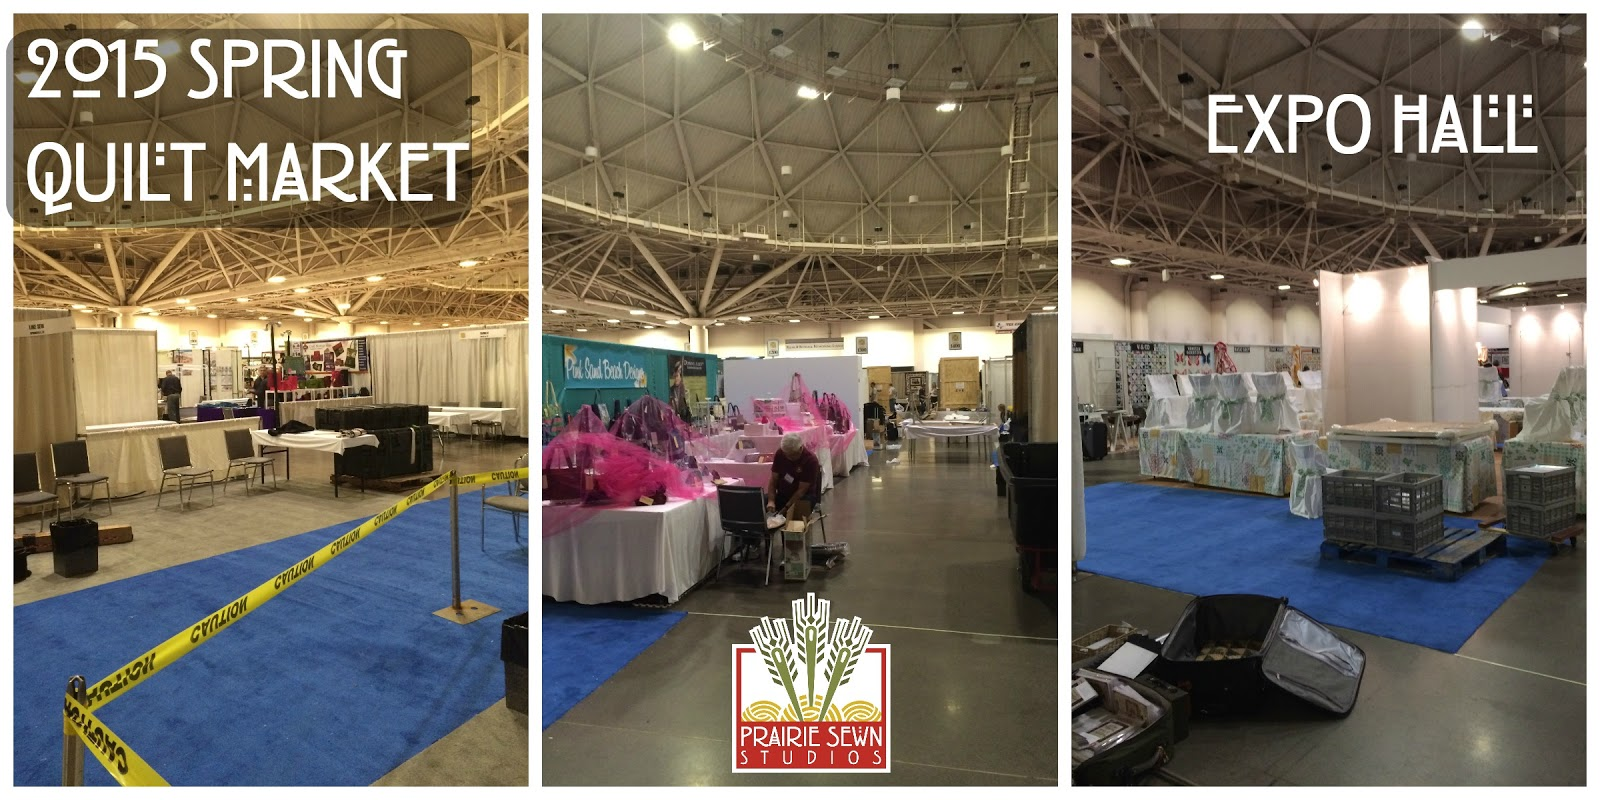 2015 Spring Quilt Market Expo Hall